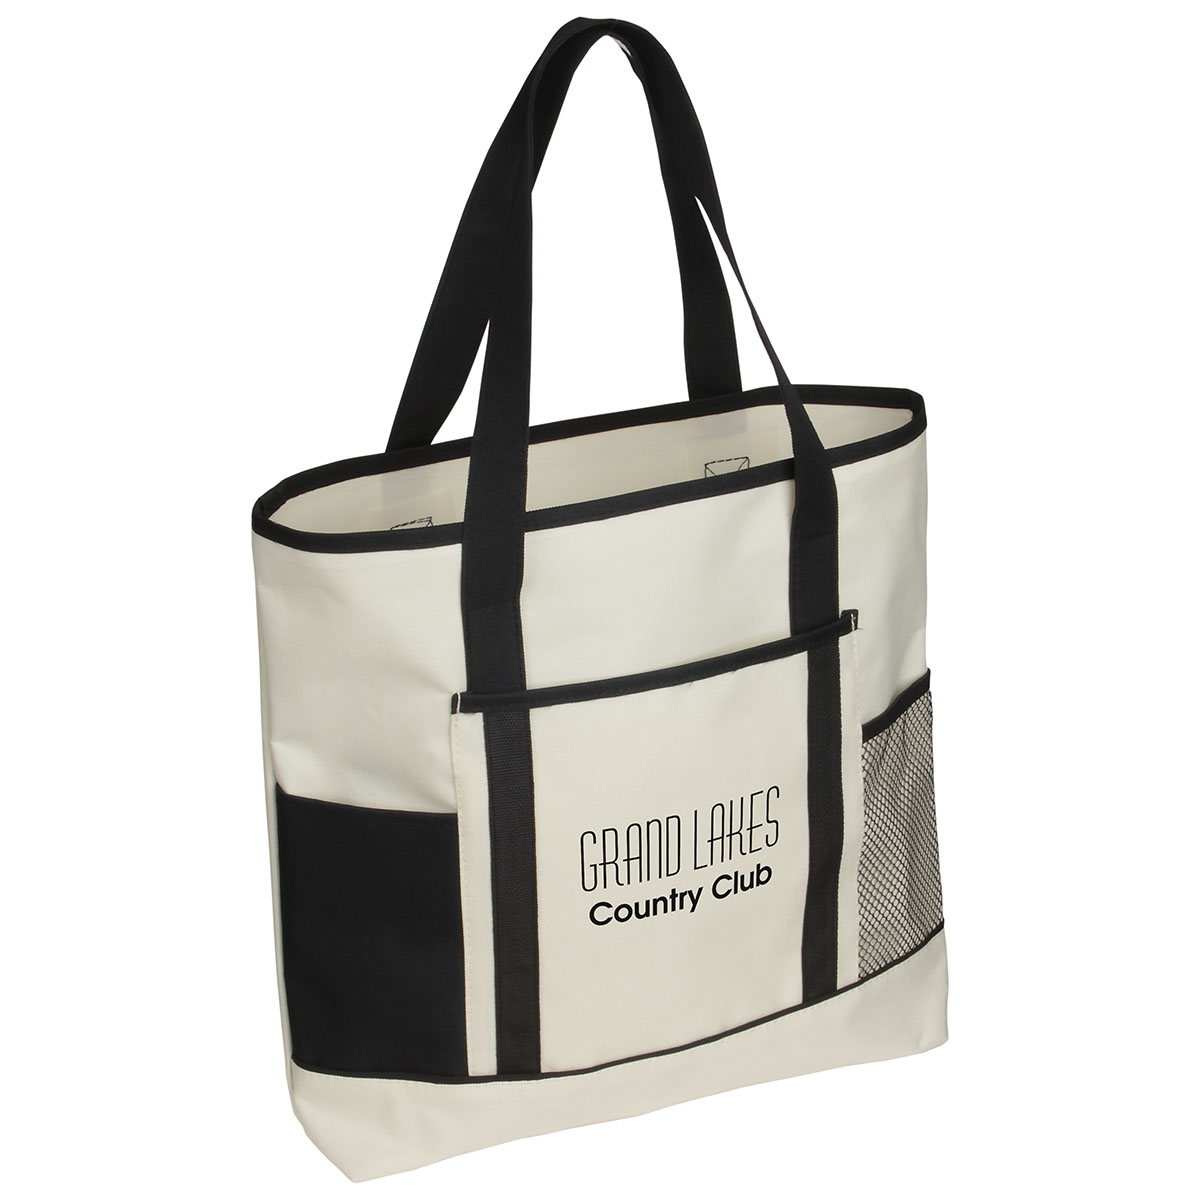 Excursion Market Tote Bag, WBA-EM13 - 1 Colour Imprint